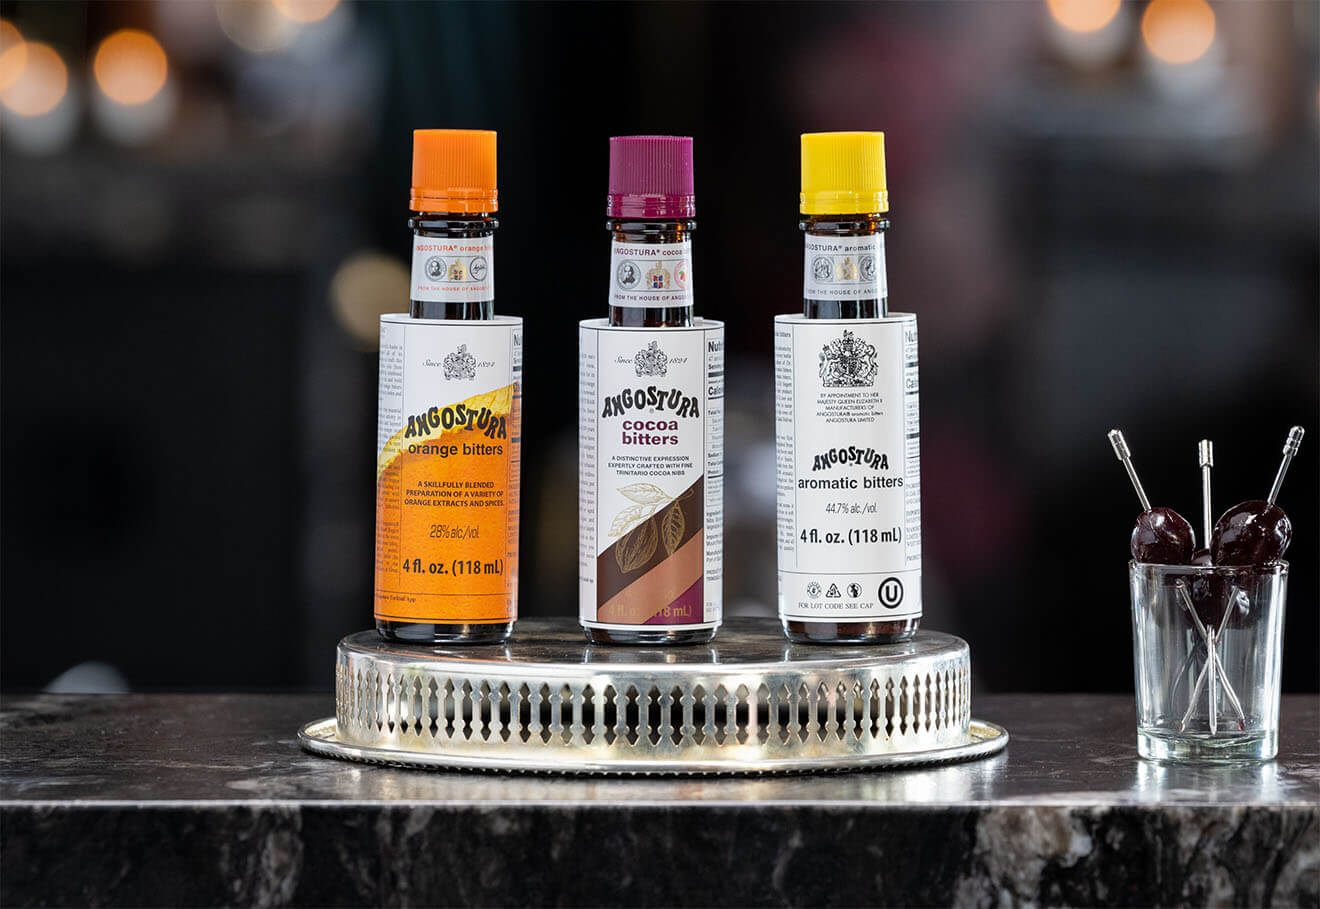 The Full Angostura Bitters Family featured image